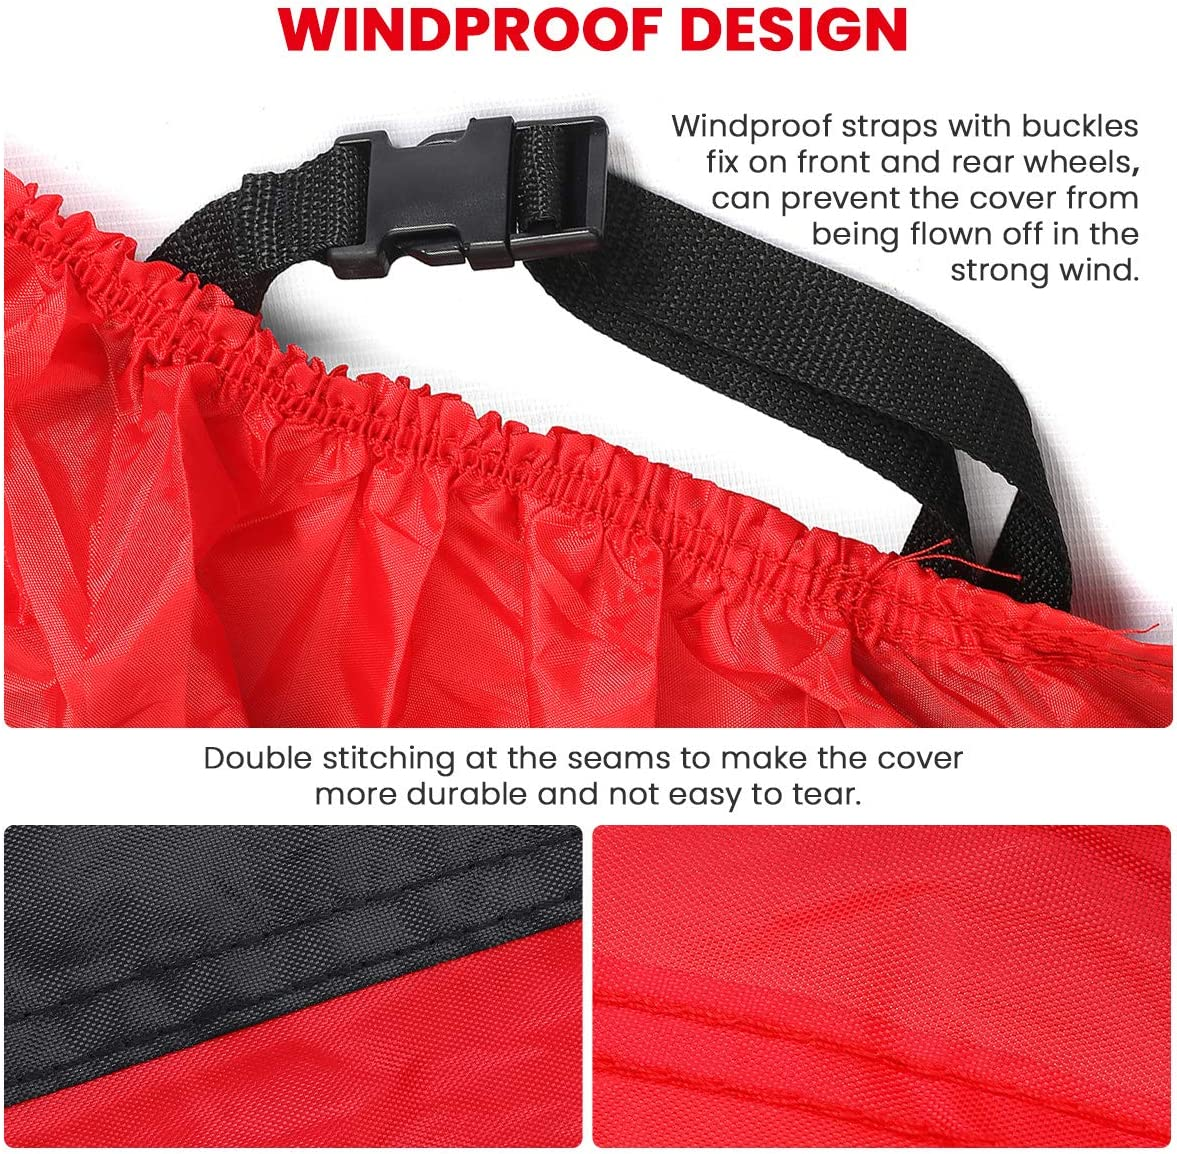 Audew Motorcycle Cover Oxford Fabric Motorcycle Cover Waterproof Outdoor Fits up to 108/'/' Motorcycles All Weather Protection with Reflective Straps 108/'/'L X 57W X 41H Lock-hole and Storage Bag